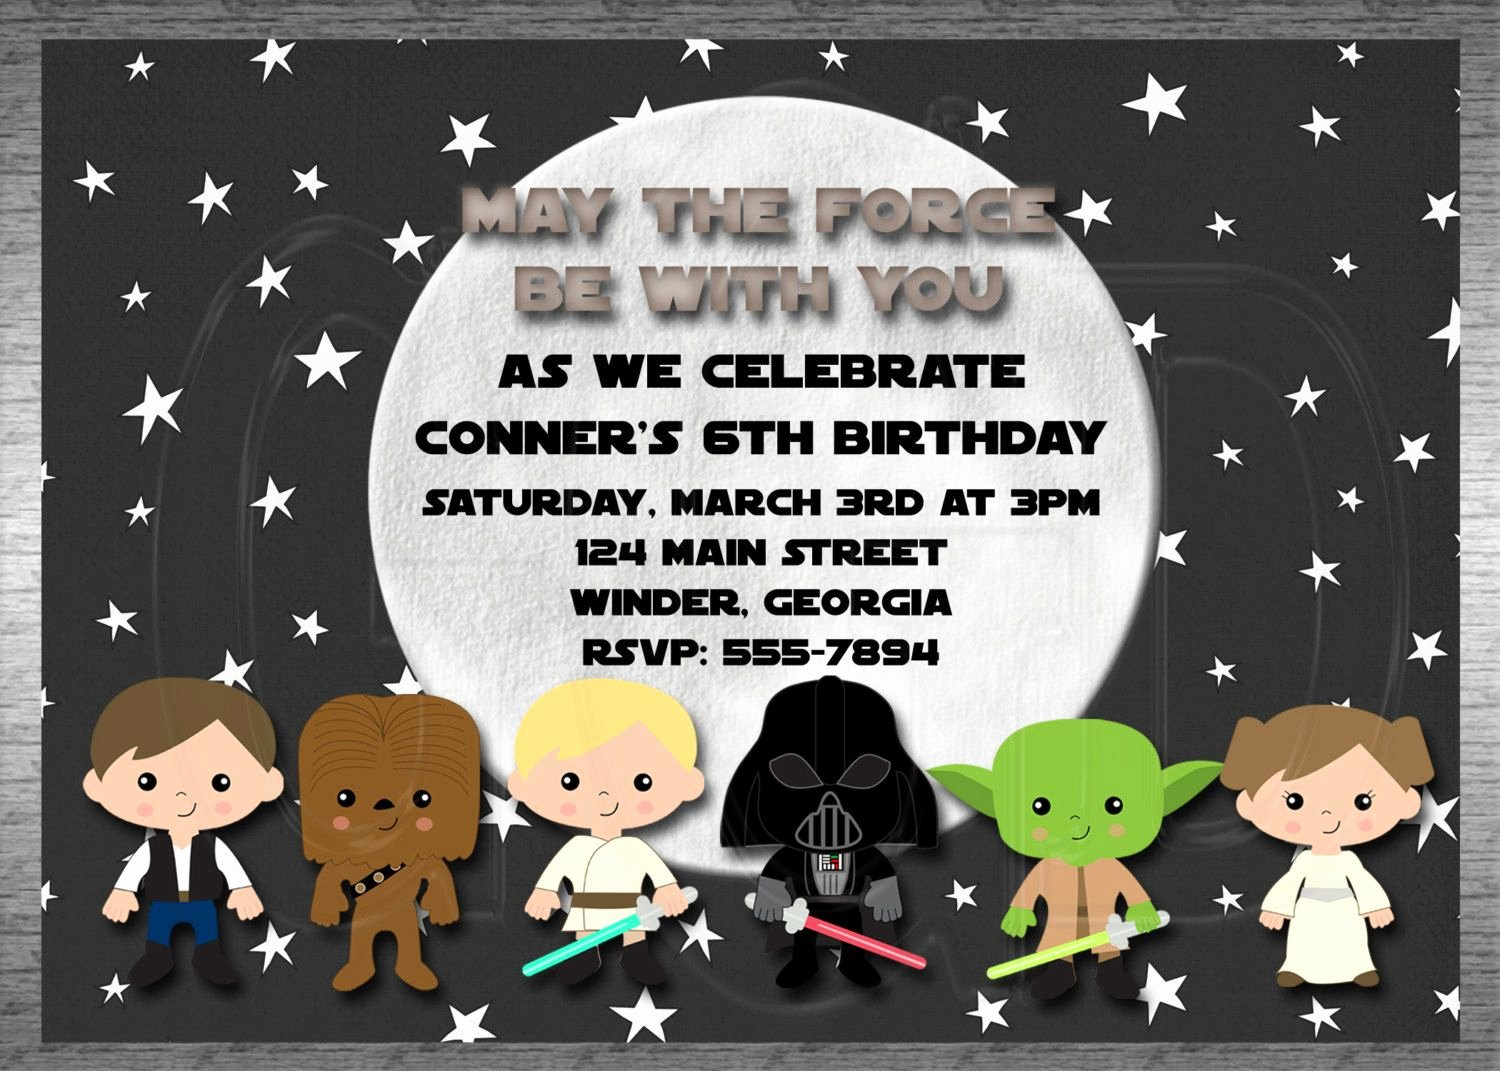 Free Star Wars Party Invitations Luxury Star Wars Invitation Inspired Printable Digital File $12